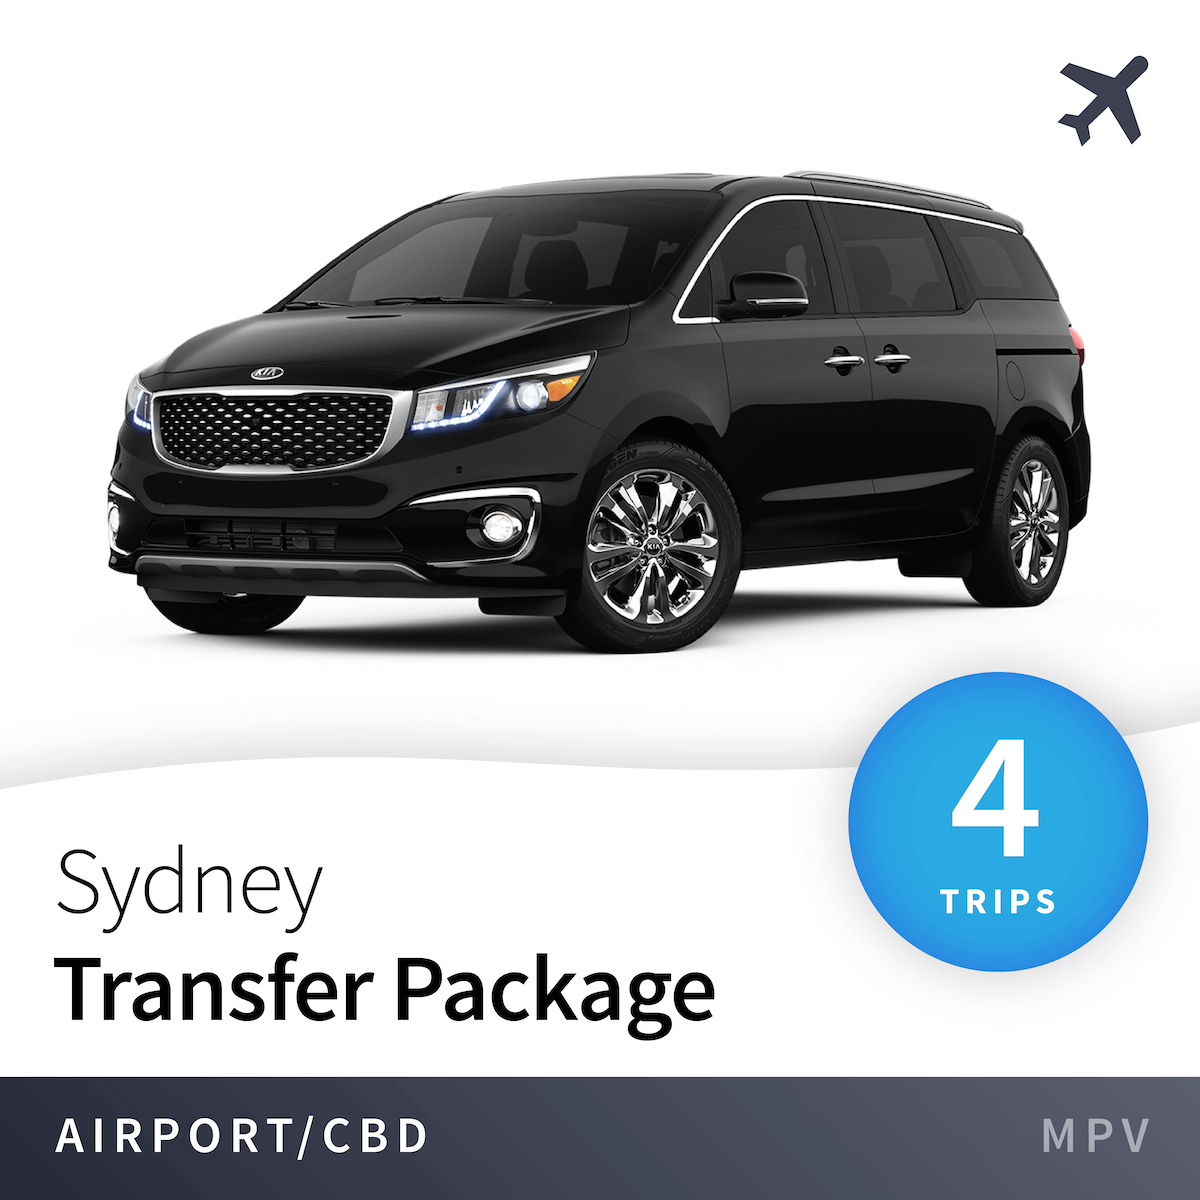 Sydney Airport Transfer Package - MPV (4 Trips) 11